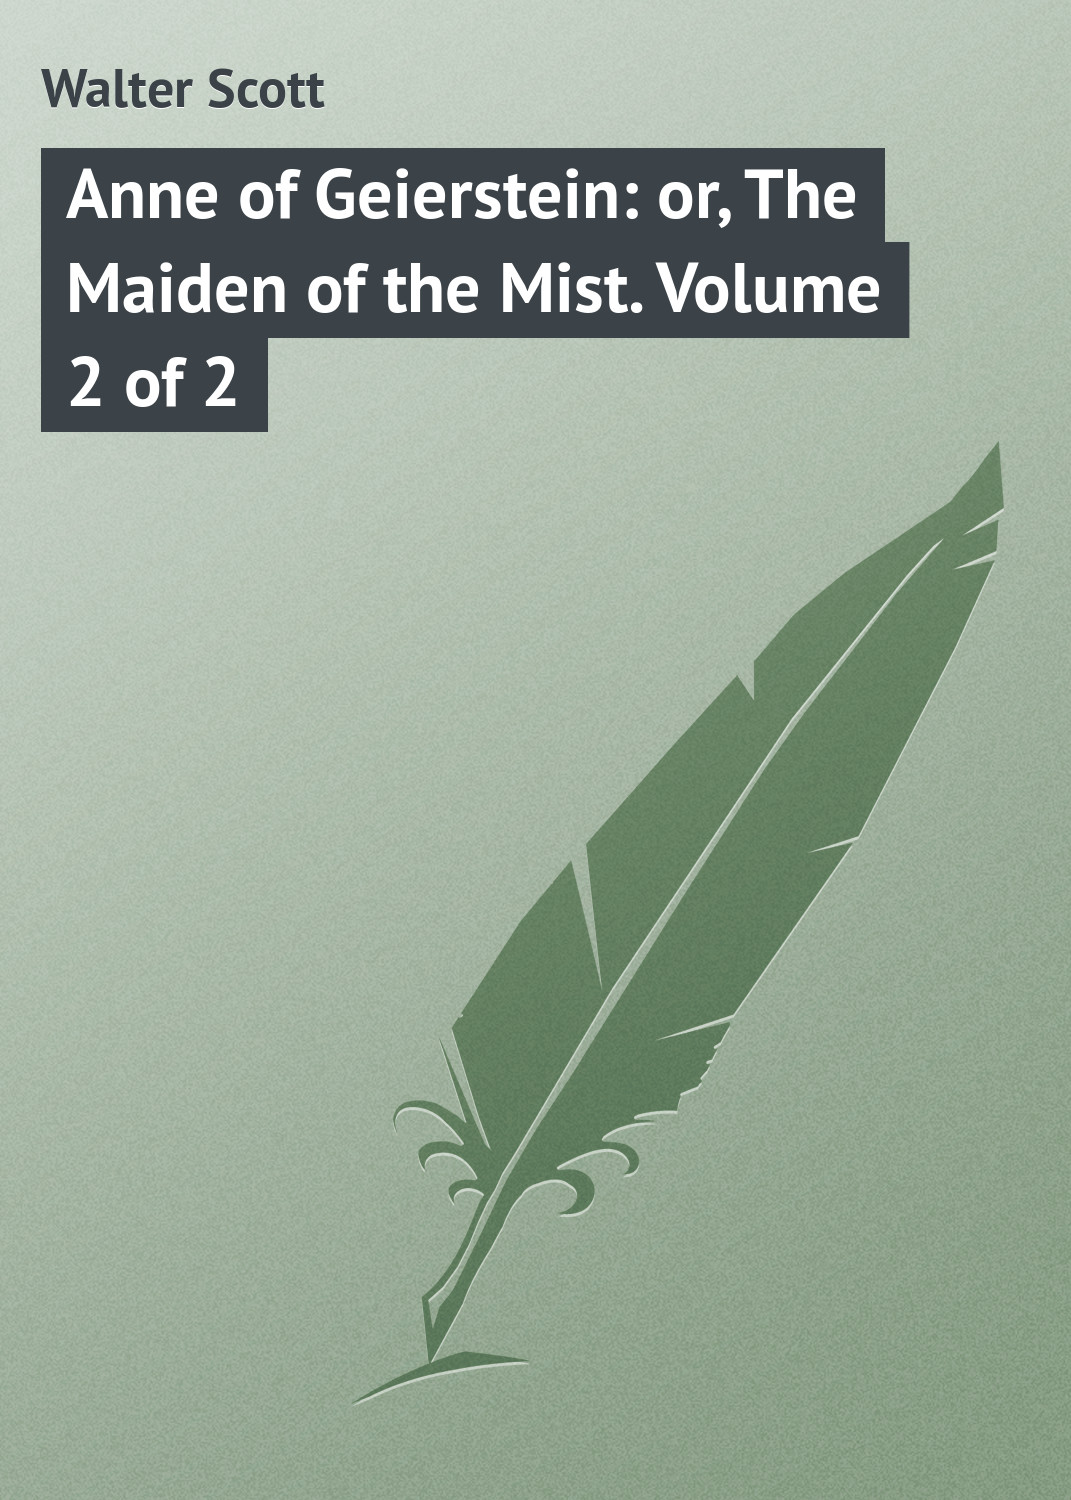 лучшая цена Walter Scott Anne of Geierstein: or, The Maiden of the Mist. Volume 2 of 2